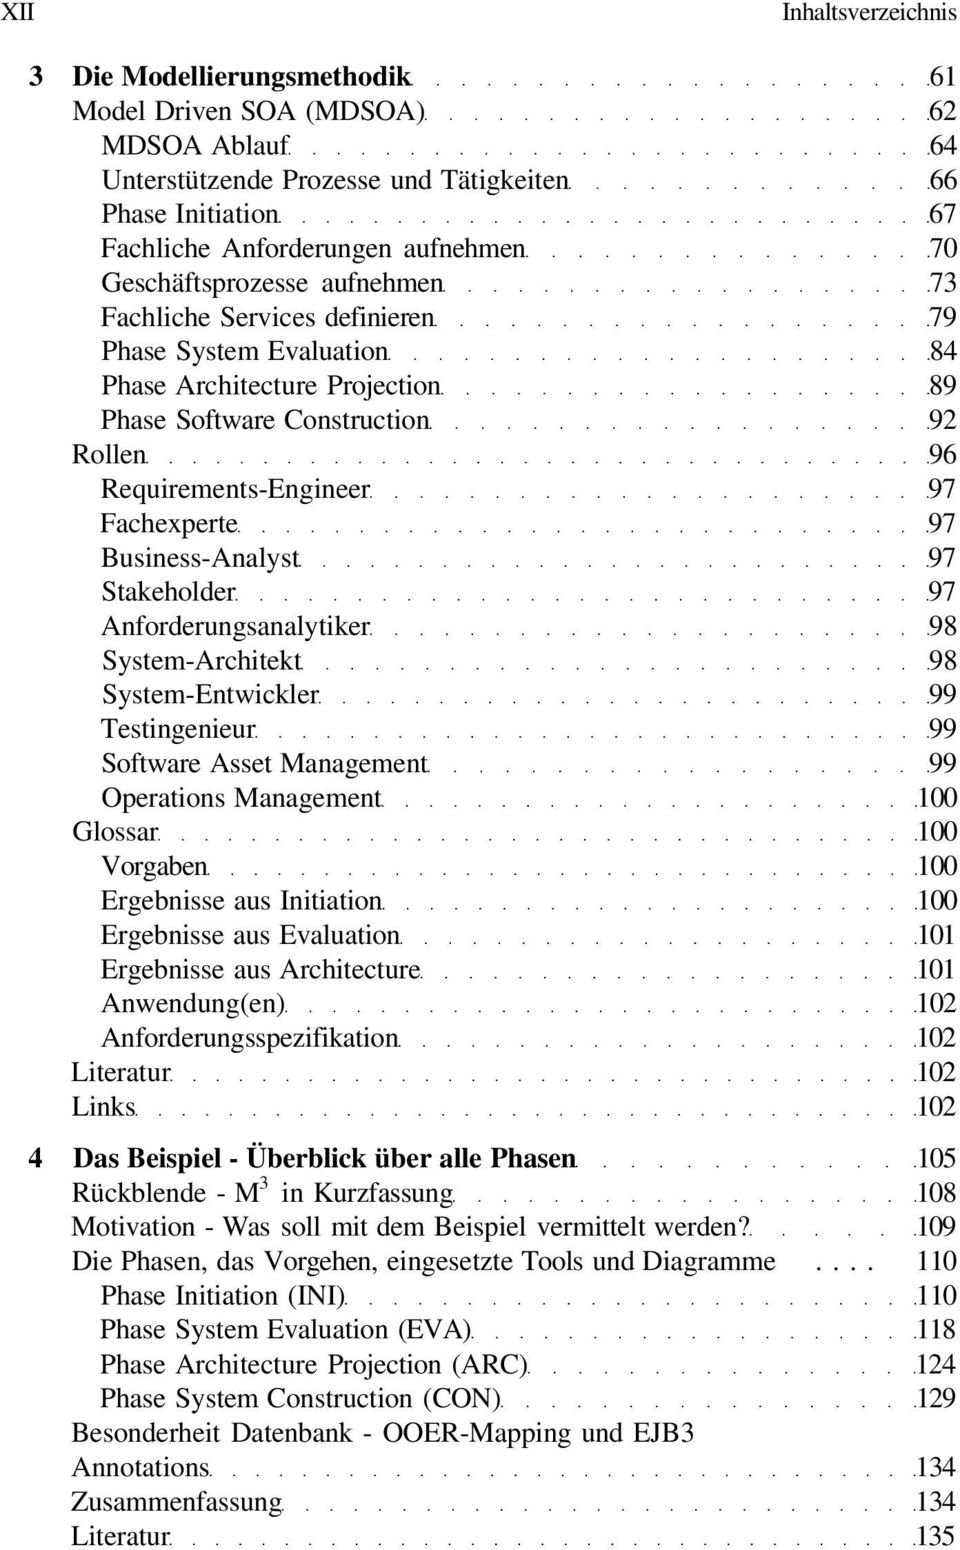 Fachexperte 97 Business-Analyst 97 Stakeholder 97 Anforderungsanalytiker 98 System-Architekt 98 System-Entwickler 99 Testingenieur 99 Software Asset Management 99 Operations Management 100 Glossar